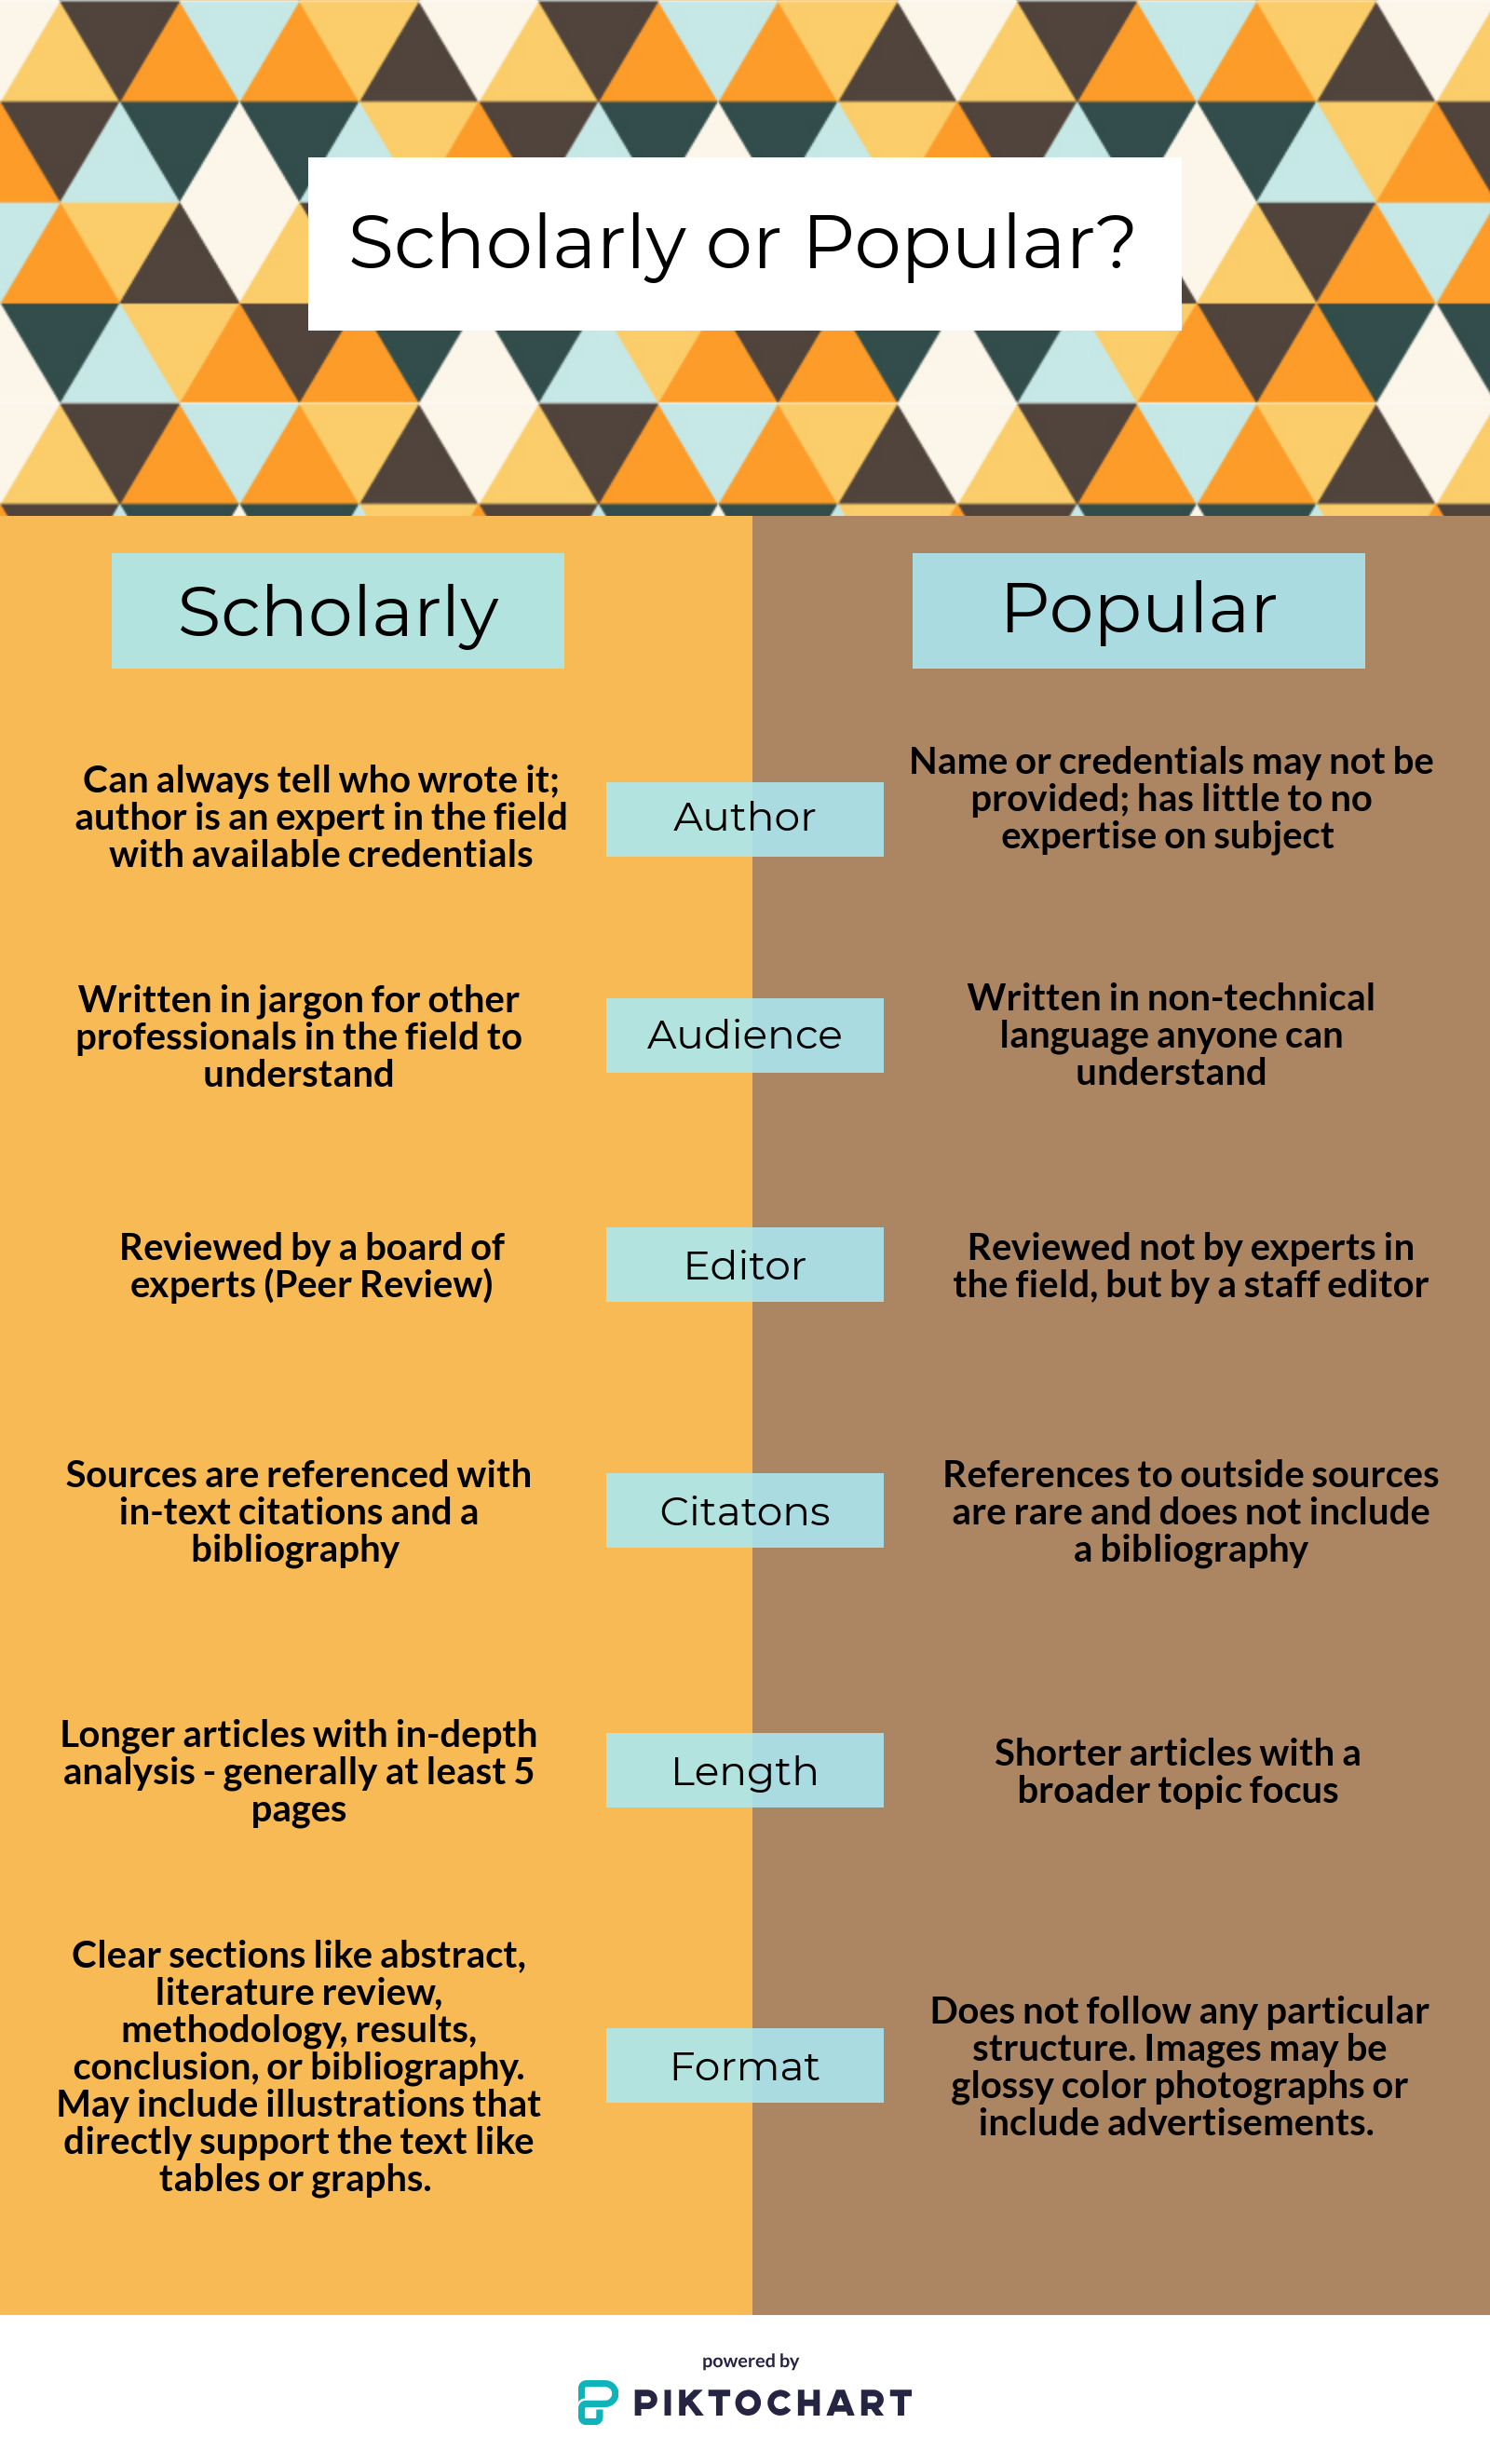 Scholarly or Popular? Compares the two under the areas of author, audience, editor, citations, length, and format. scholarl